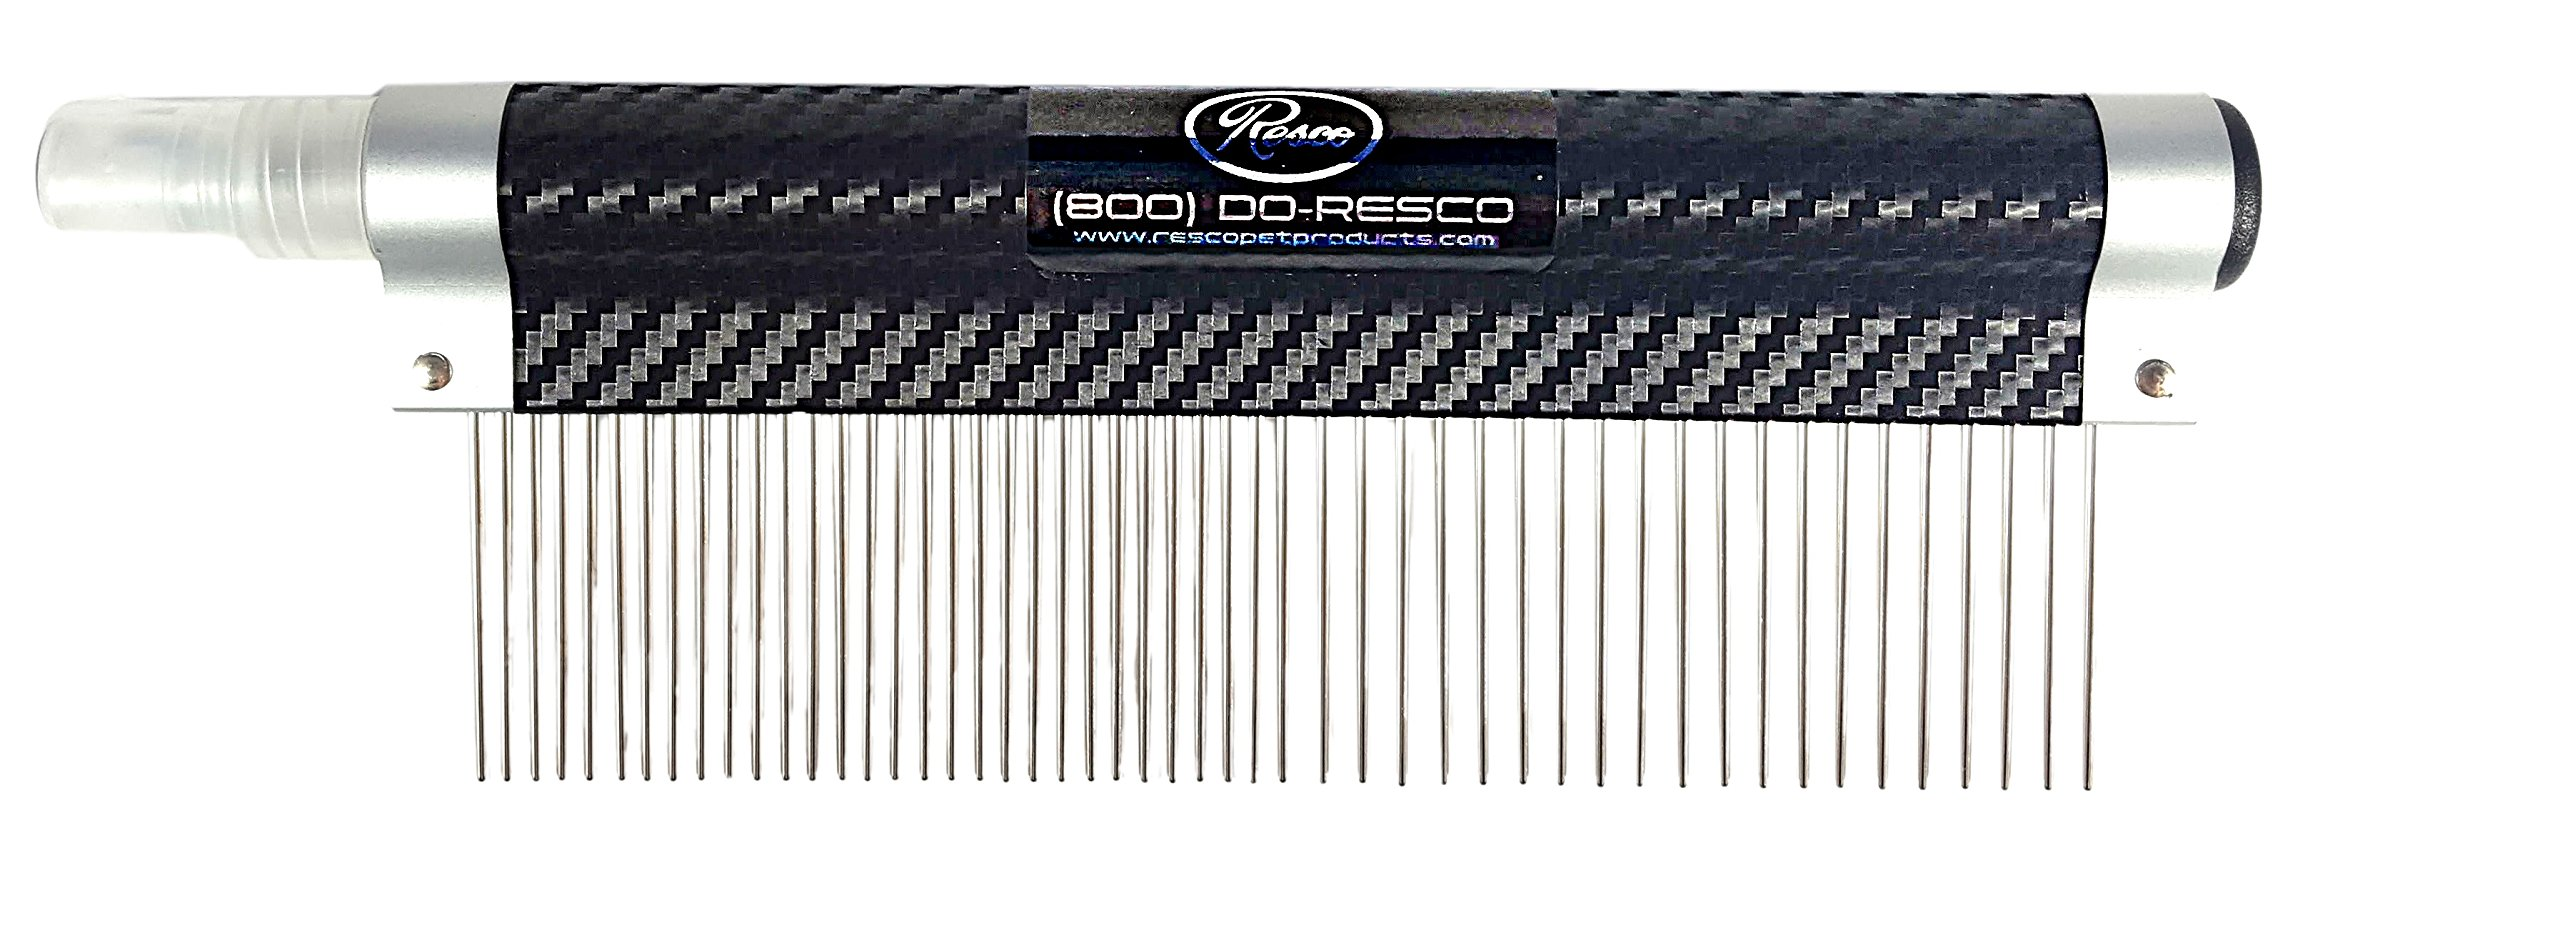 Resco USA-MADE Spritzer Comb for Pets, 1.5'' Combination, Carbon Fiber, Includes Detangler and Finishing Spray